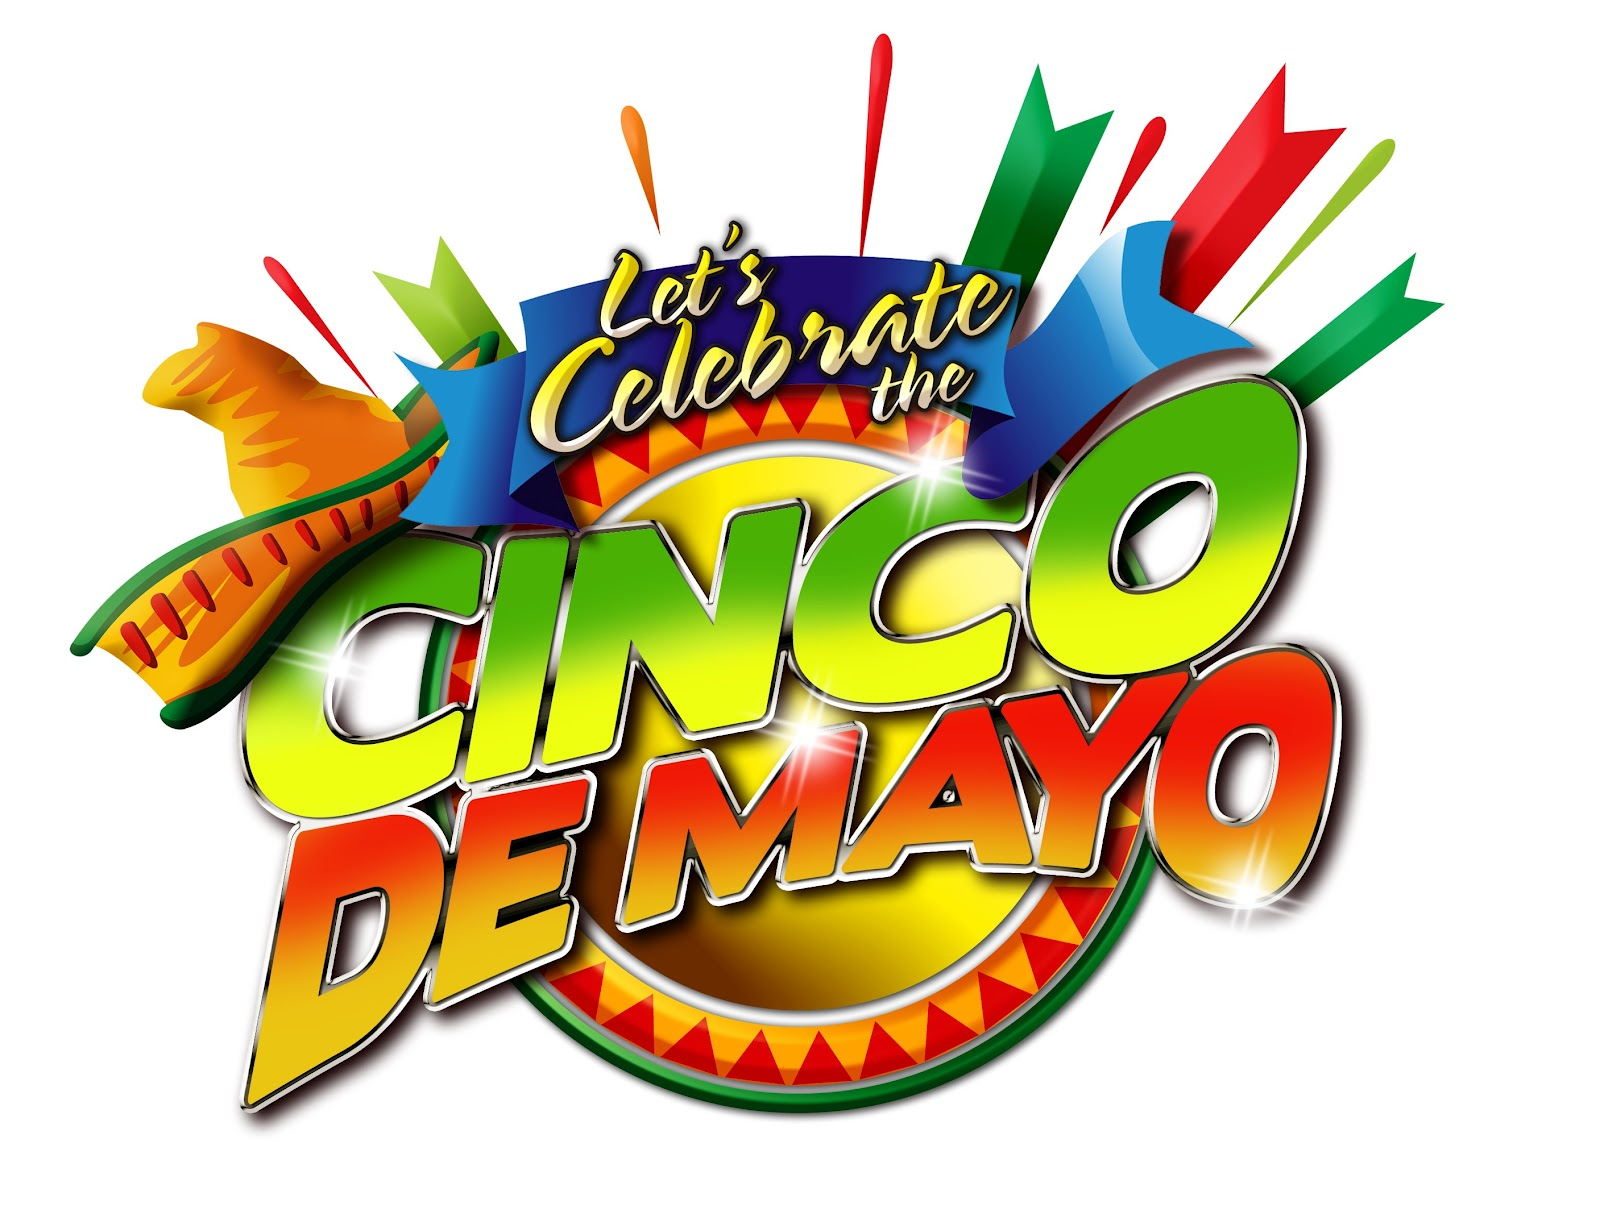 http://4.bp.blogspot.com/-carrvdy7a9w/T5ZD7Mog5lI/AAAAAAAAIrU/oG2HBOuy948/s1600/cinco_de_mayo_fiesto_wallpapers_pictures_celebration_mexico_foodfestival_entertainment(www.fun-gall.blogspot.com)_10.jpg